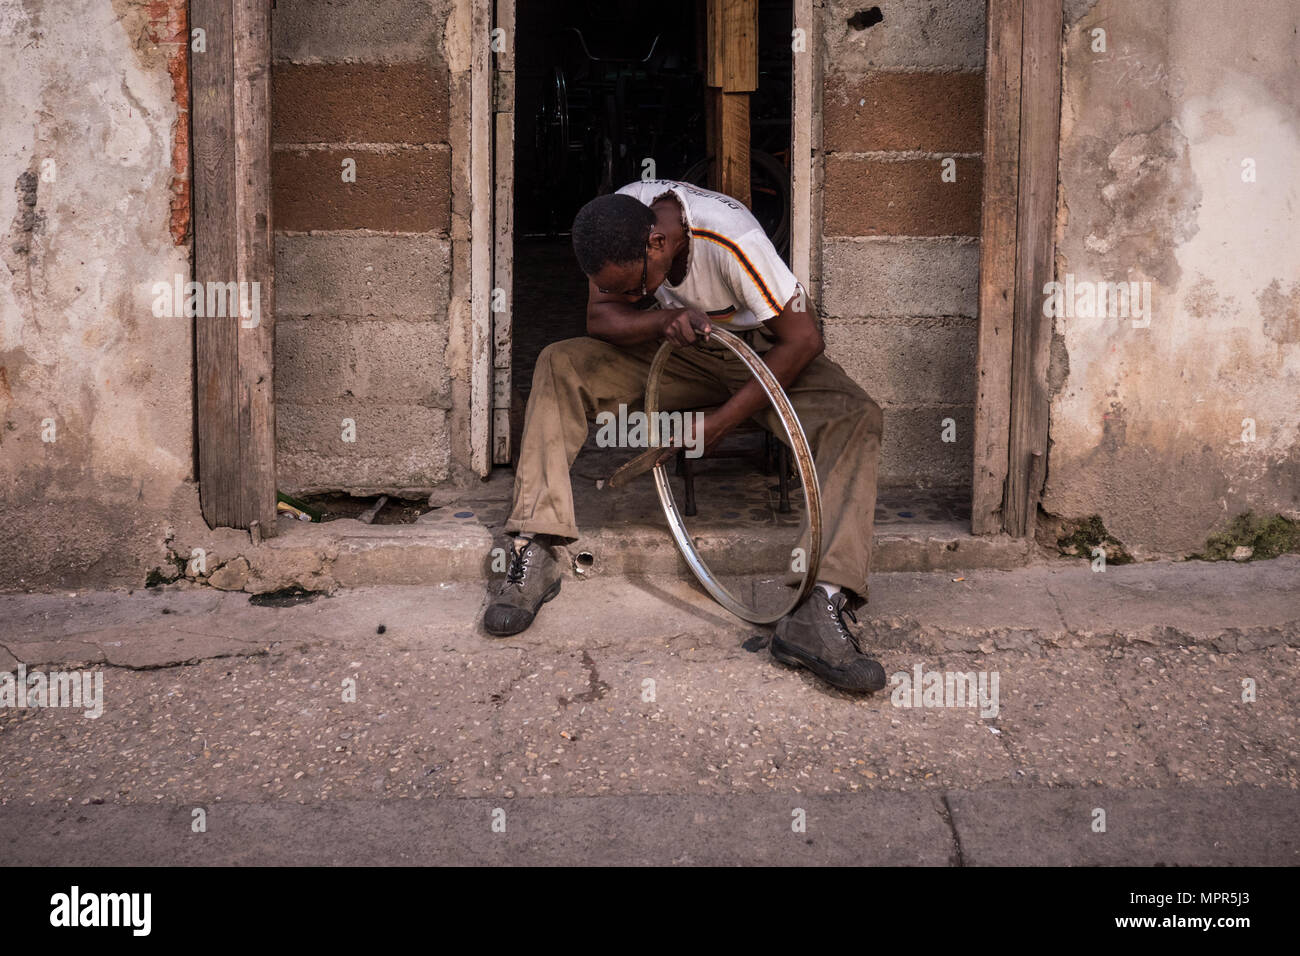 Adult male cleaning and brushing inside a metal bicycle wheel, Havana Cuba - Stock Image